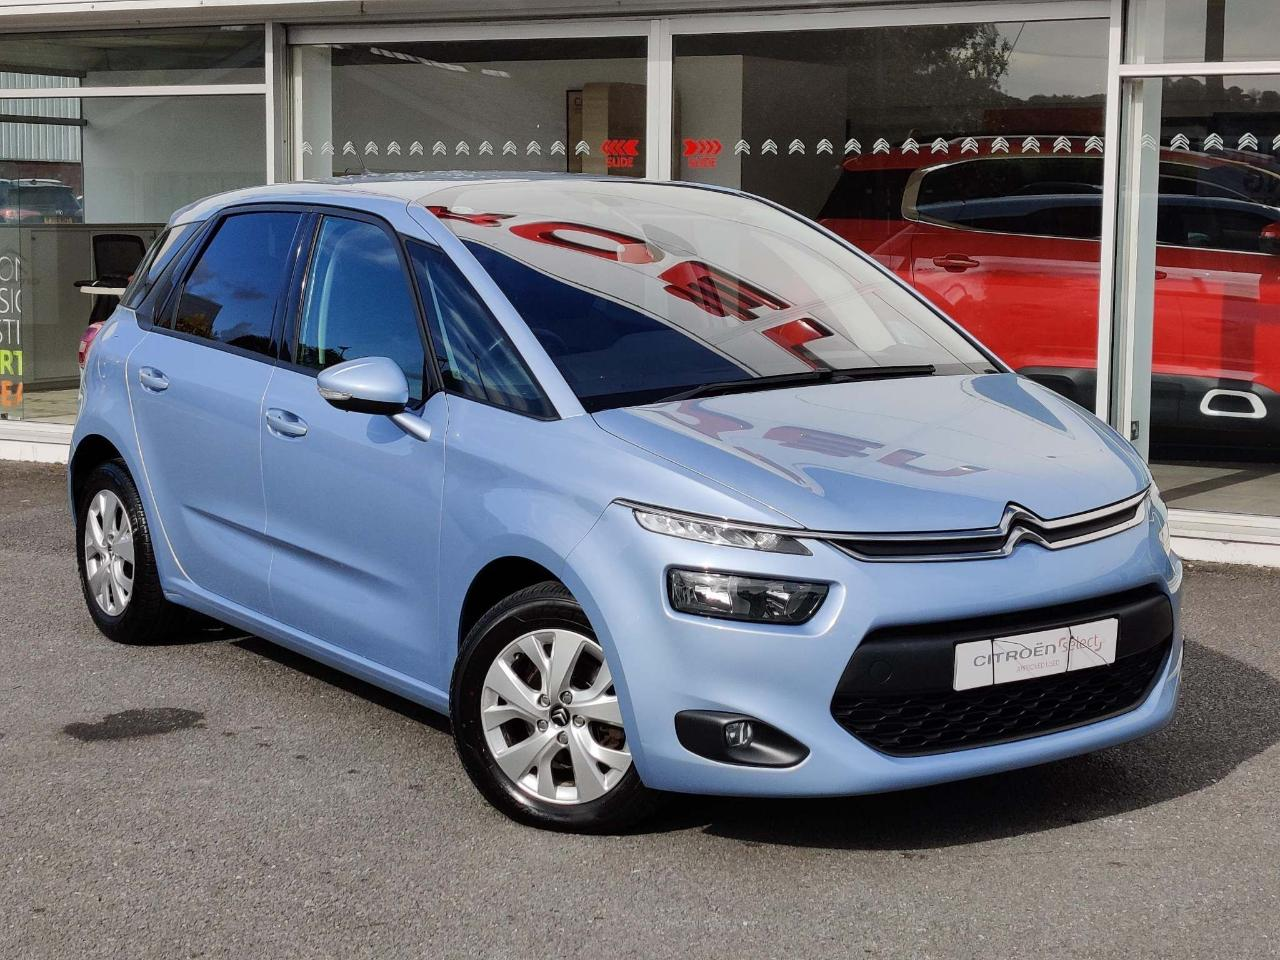 Citroën C4 Picasso 1.6 HDi VTR+ 5dr